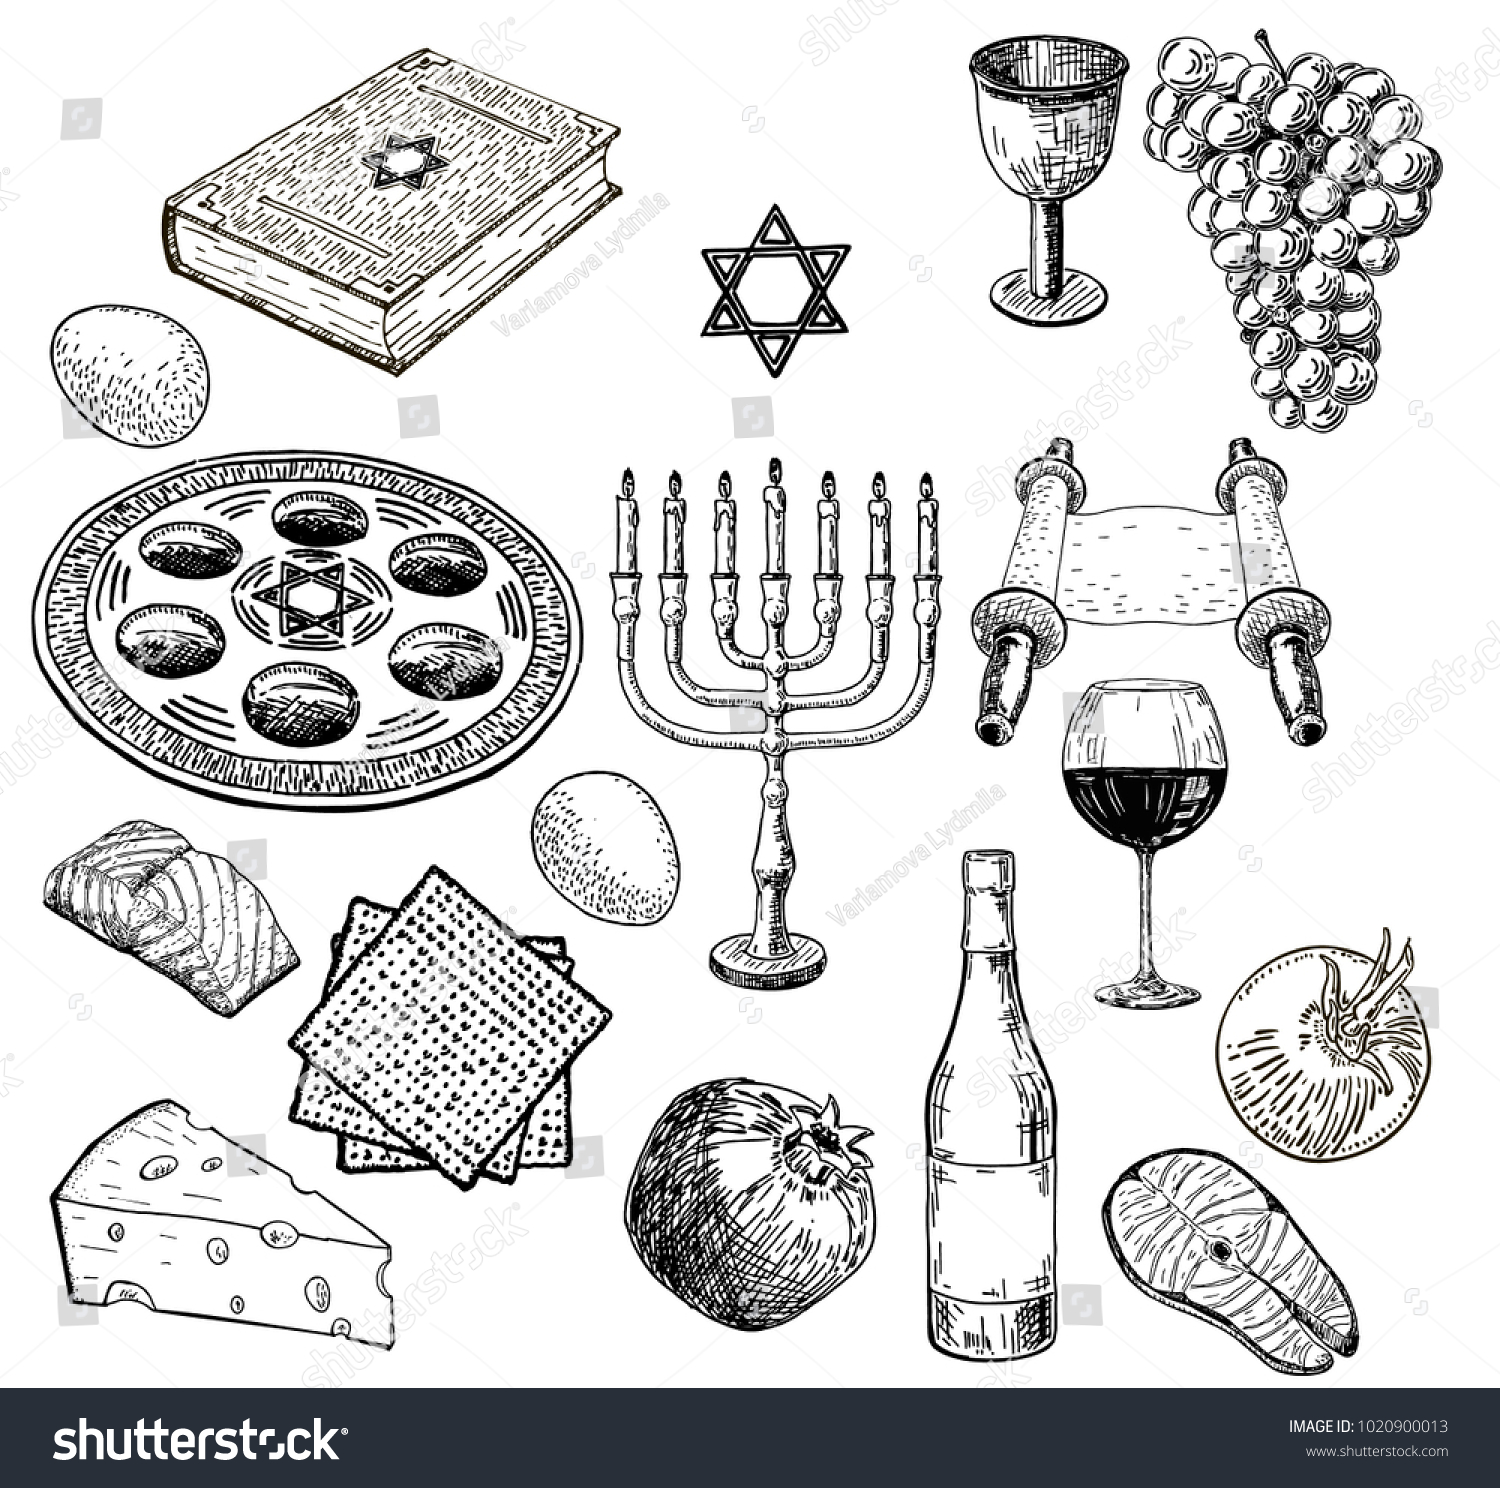 Vector set of sketches on the theme of passover attributes and symbols of the jewish